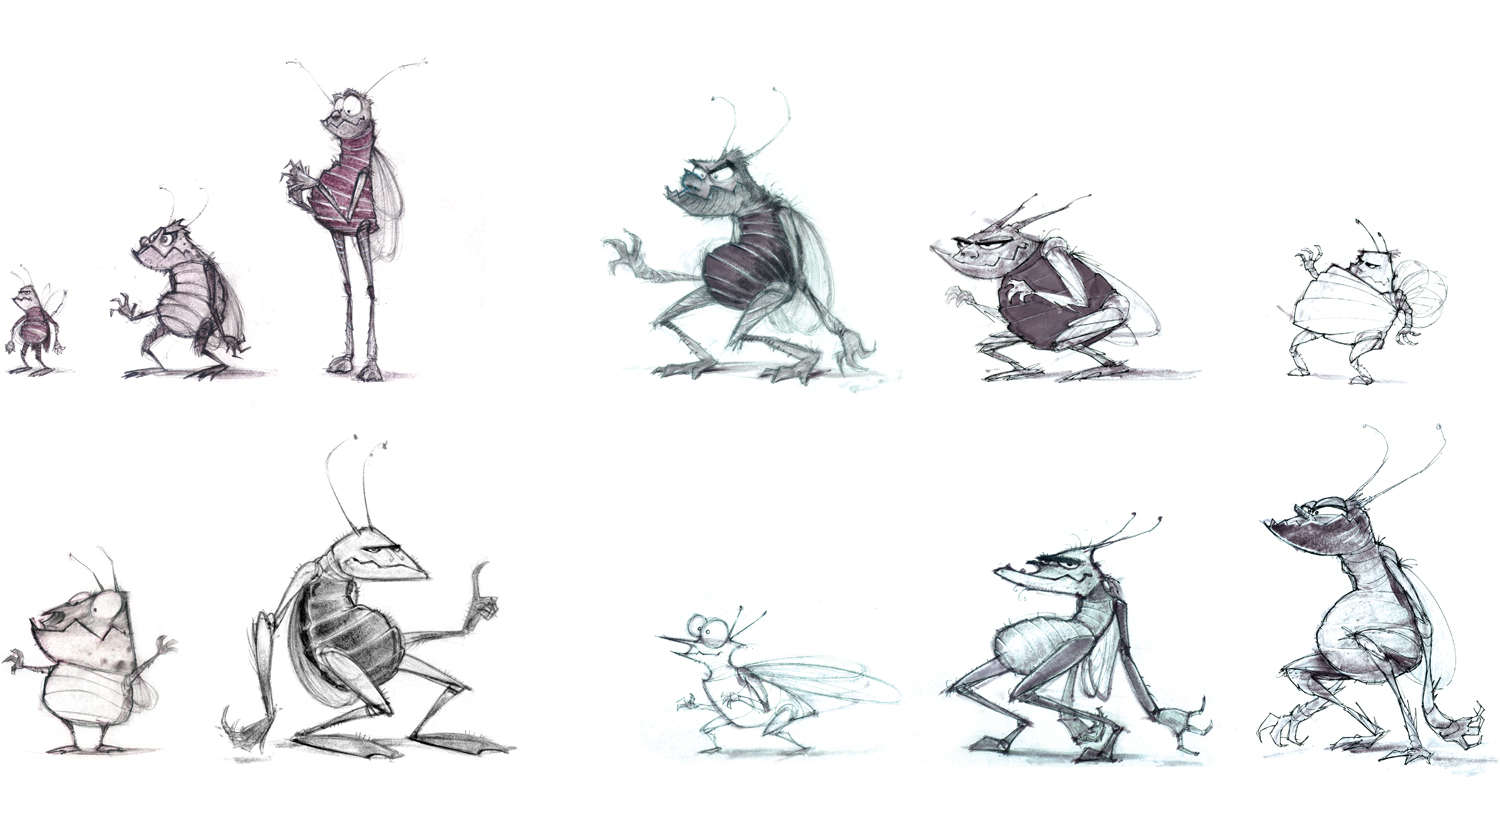 The Art of Jeremy Rumas_bugs_insects_animation_3Dmodel designs_marker and pen_pencil_NYC Character Designer_character designs_Jeremy Rumas drawings_b_www_jeremyrumas_com.jpg